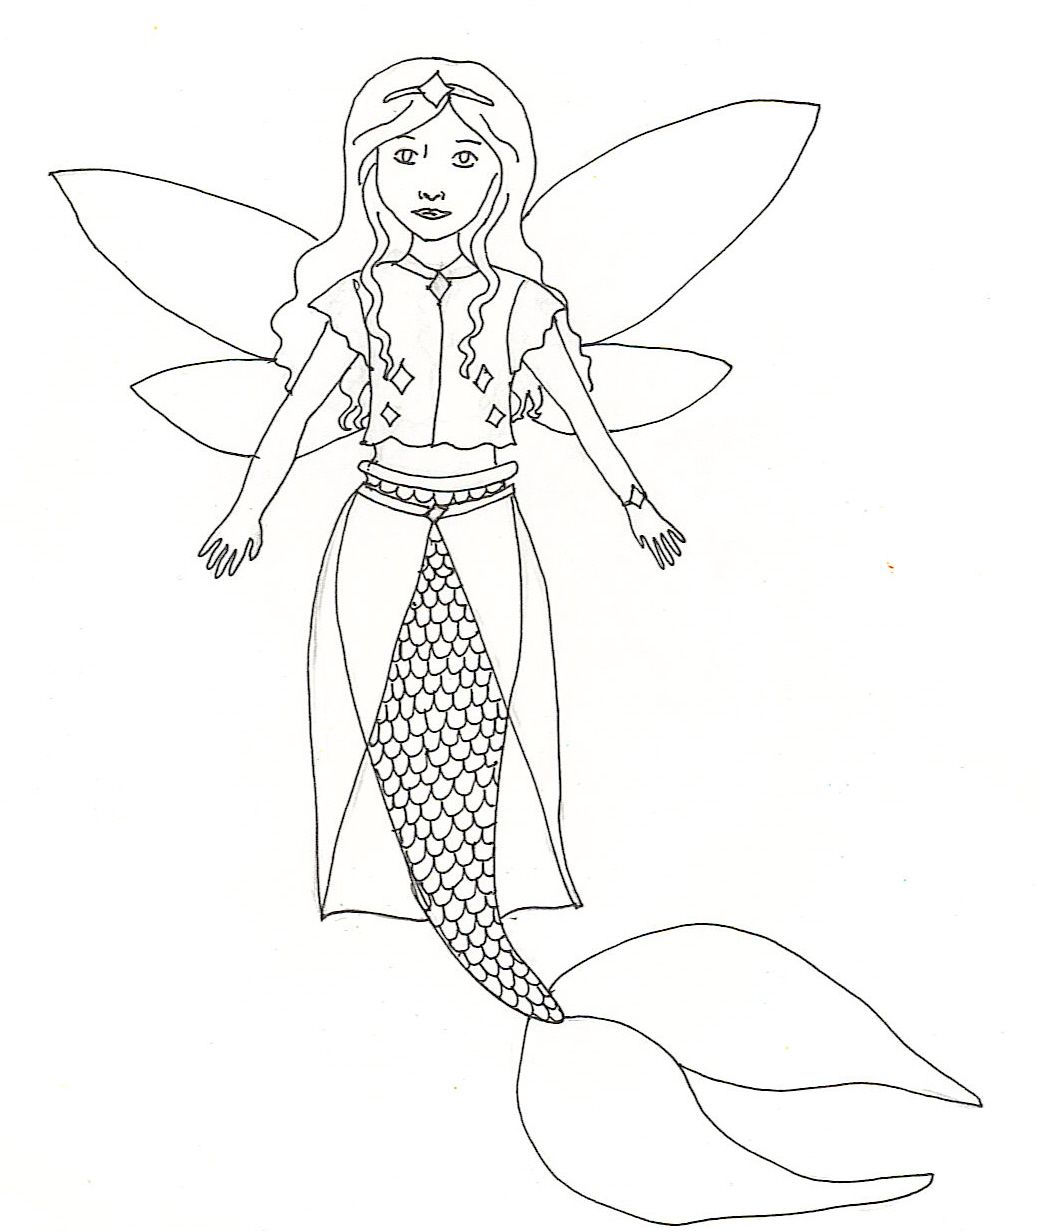 barbie princess mermaid coloring pages - princess color pages printable teach a fish homeschool